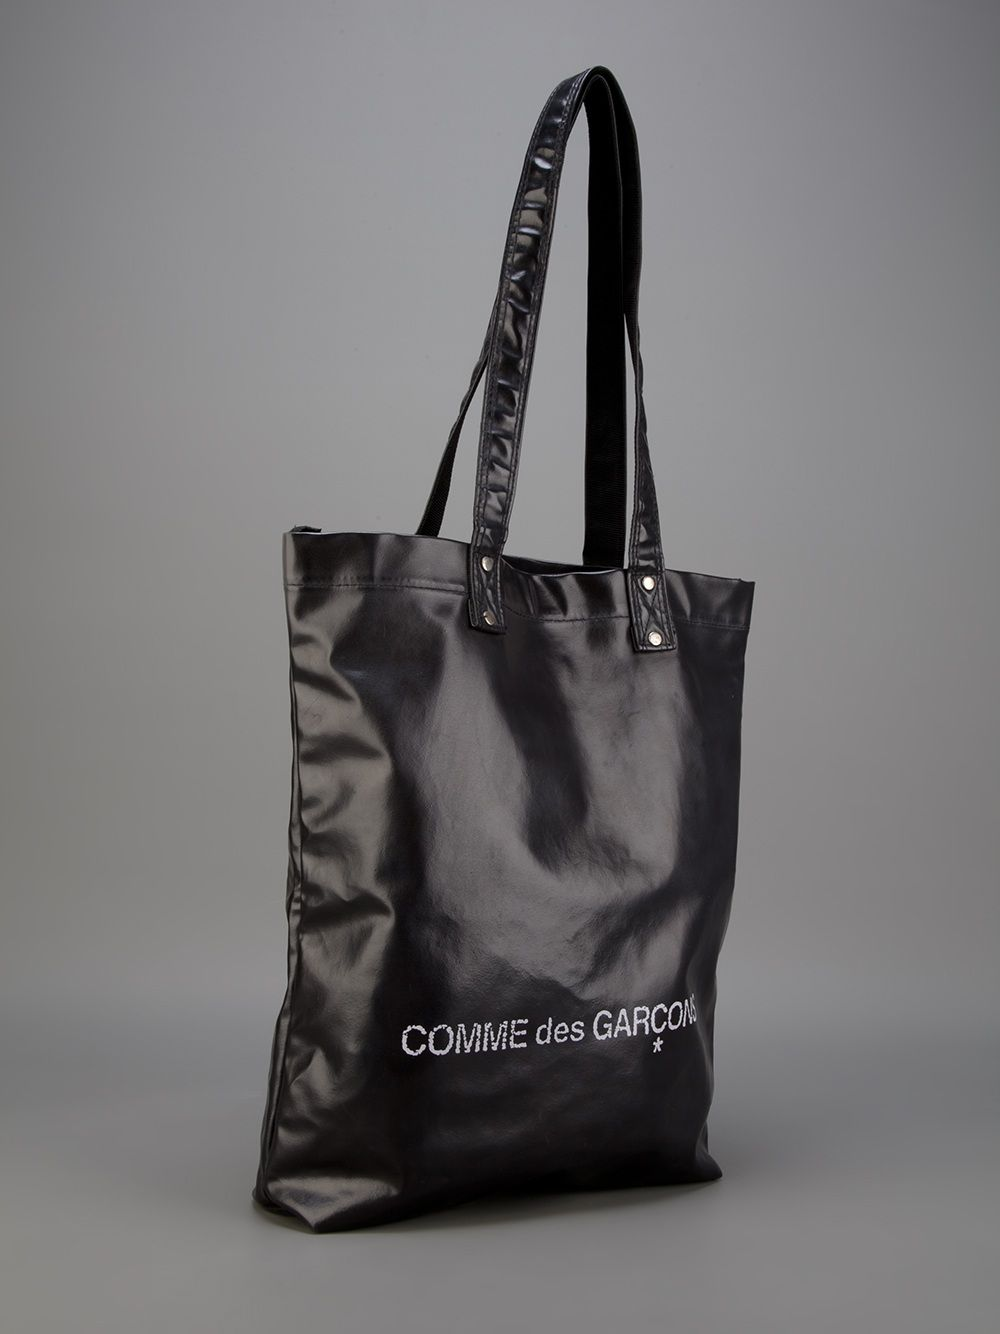 4db8cc43b2b6 Comme des garçons Logo Tote Bag in Black for Men